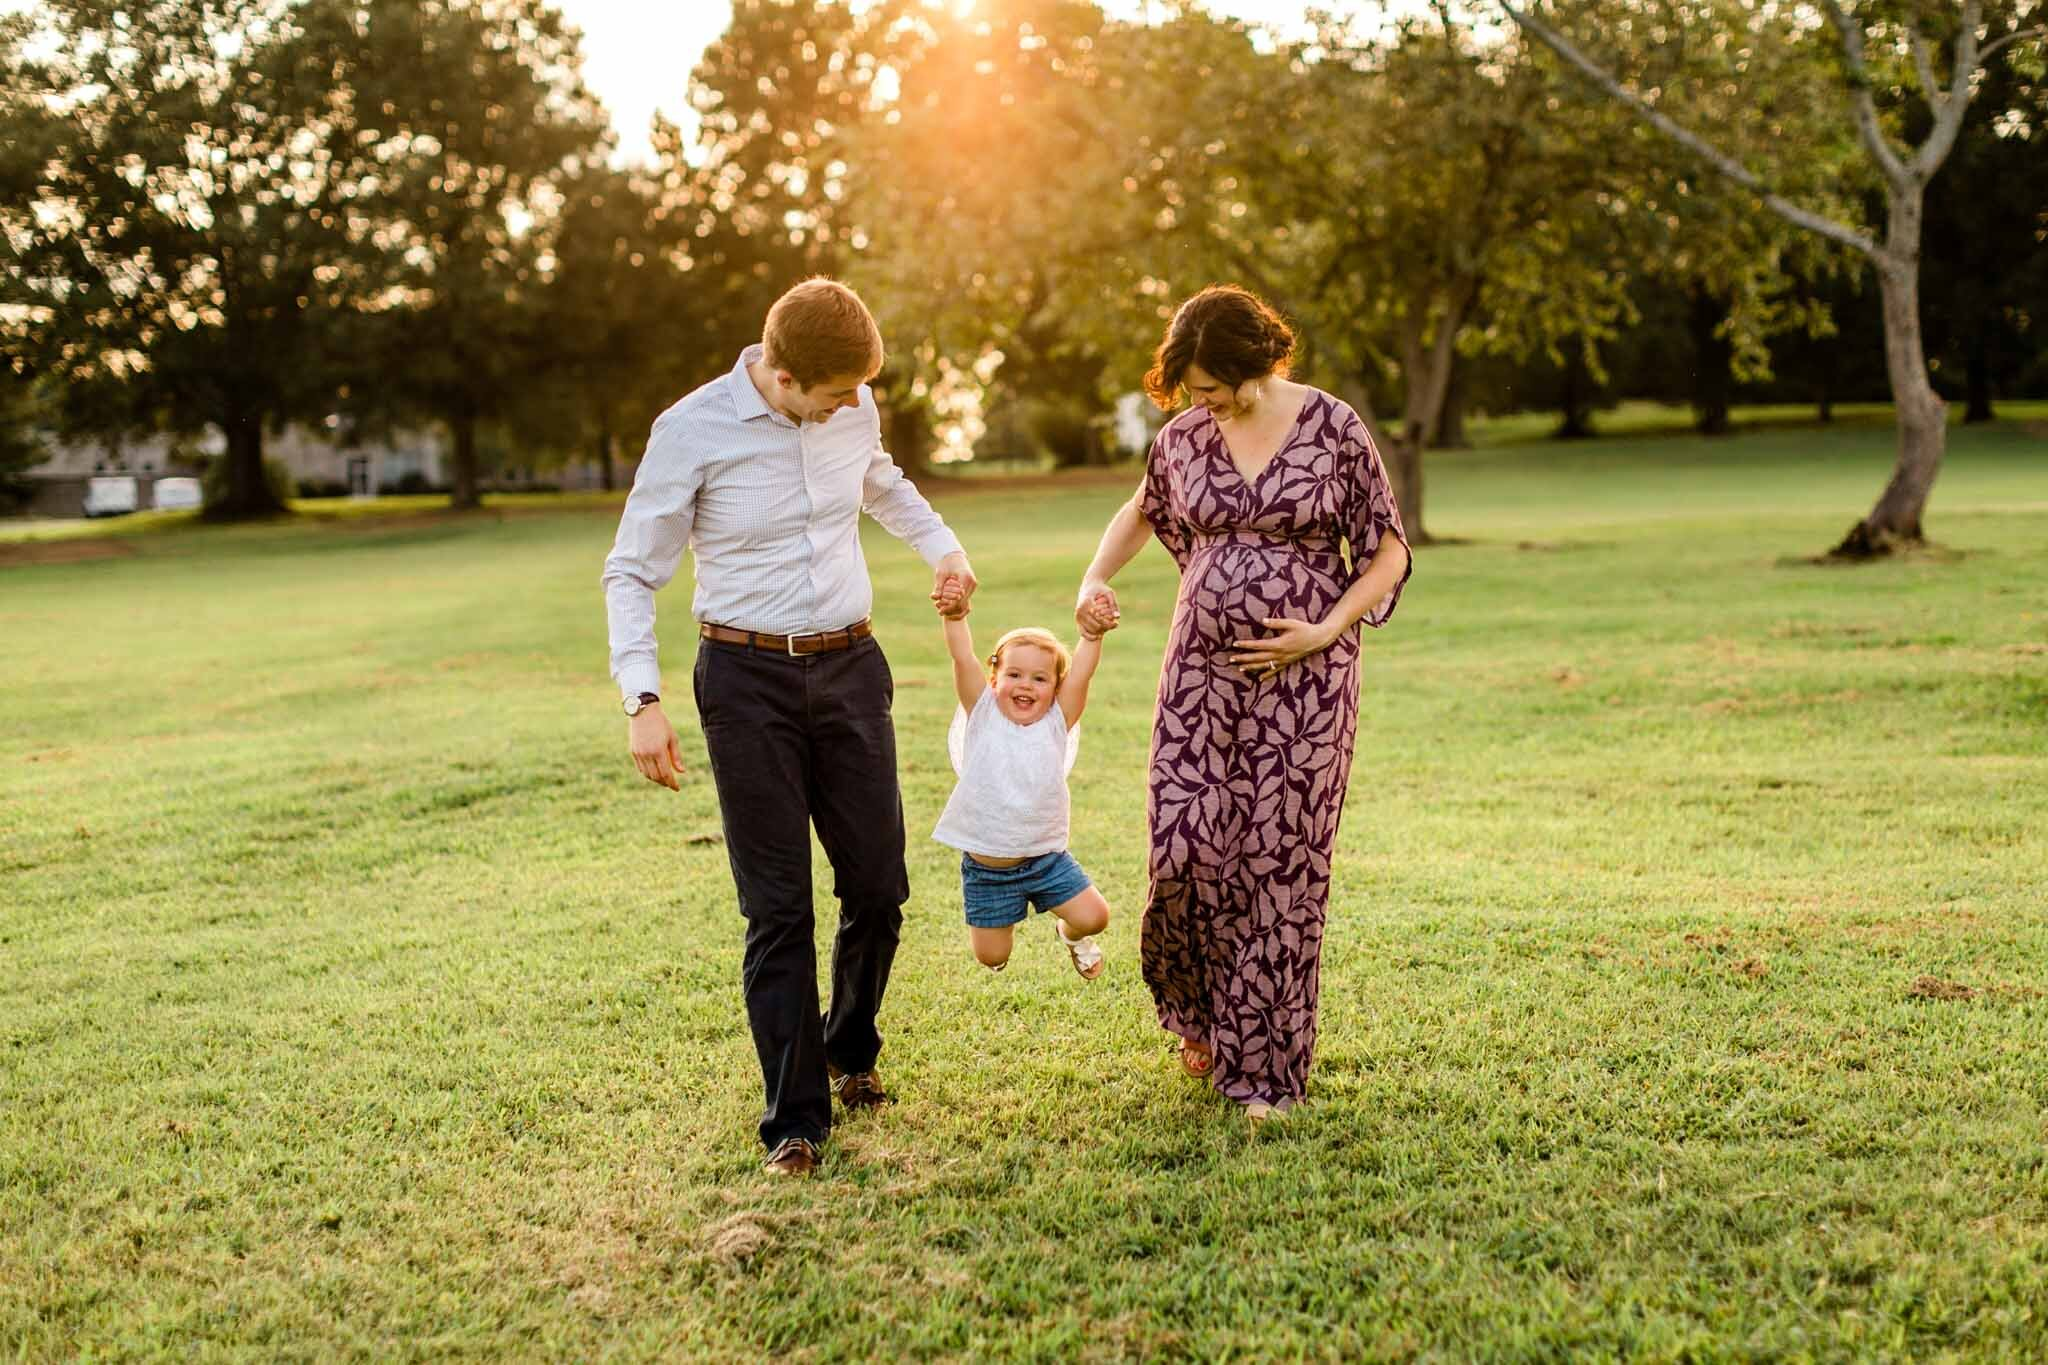 Raleigh Family Photographer at Dix Park | By G. Lin Photography | Parents swinging daughter outside